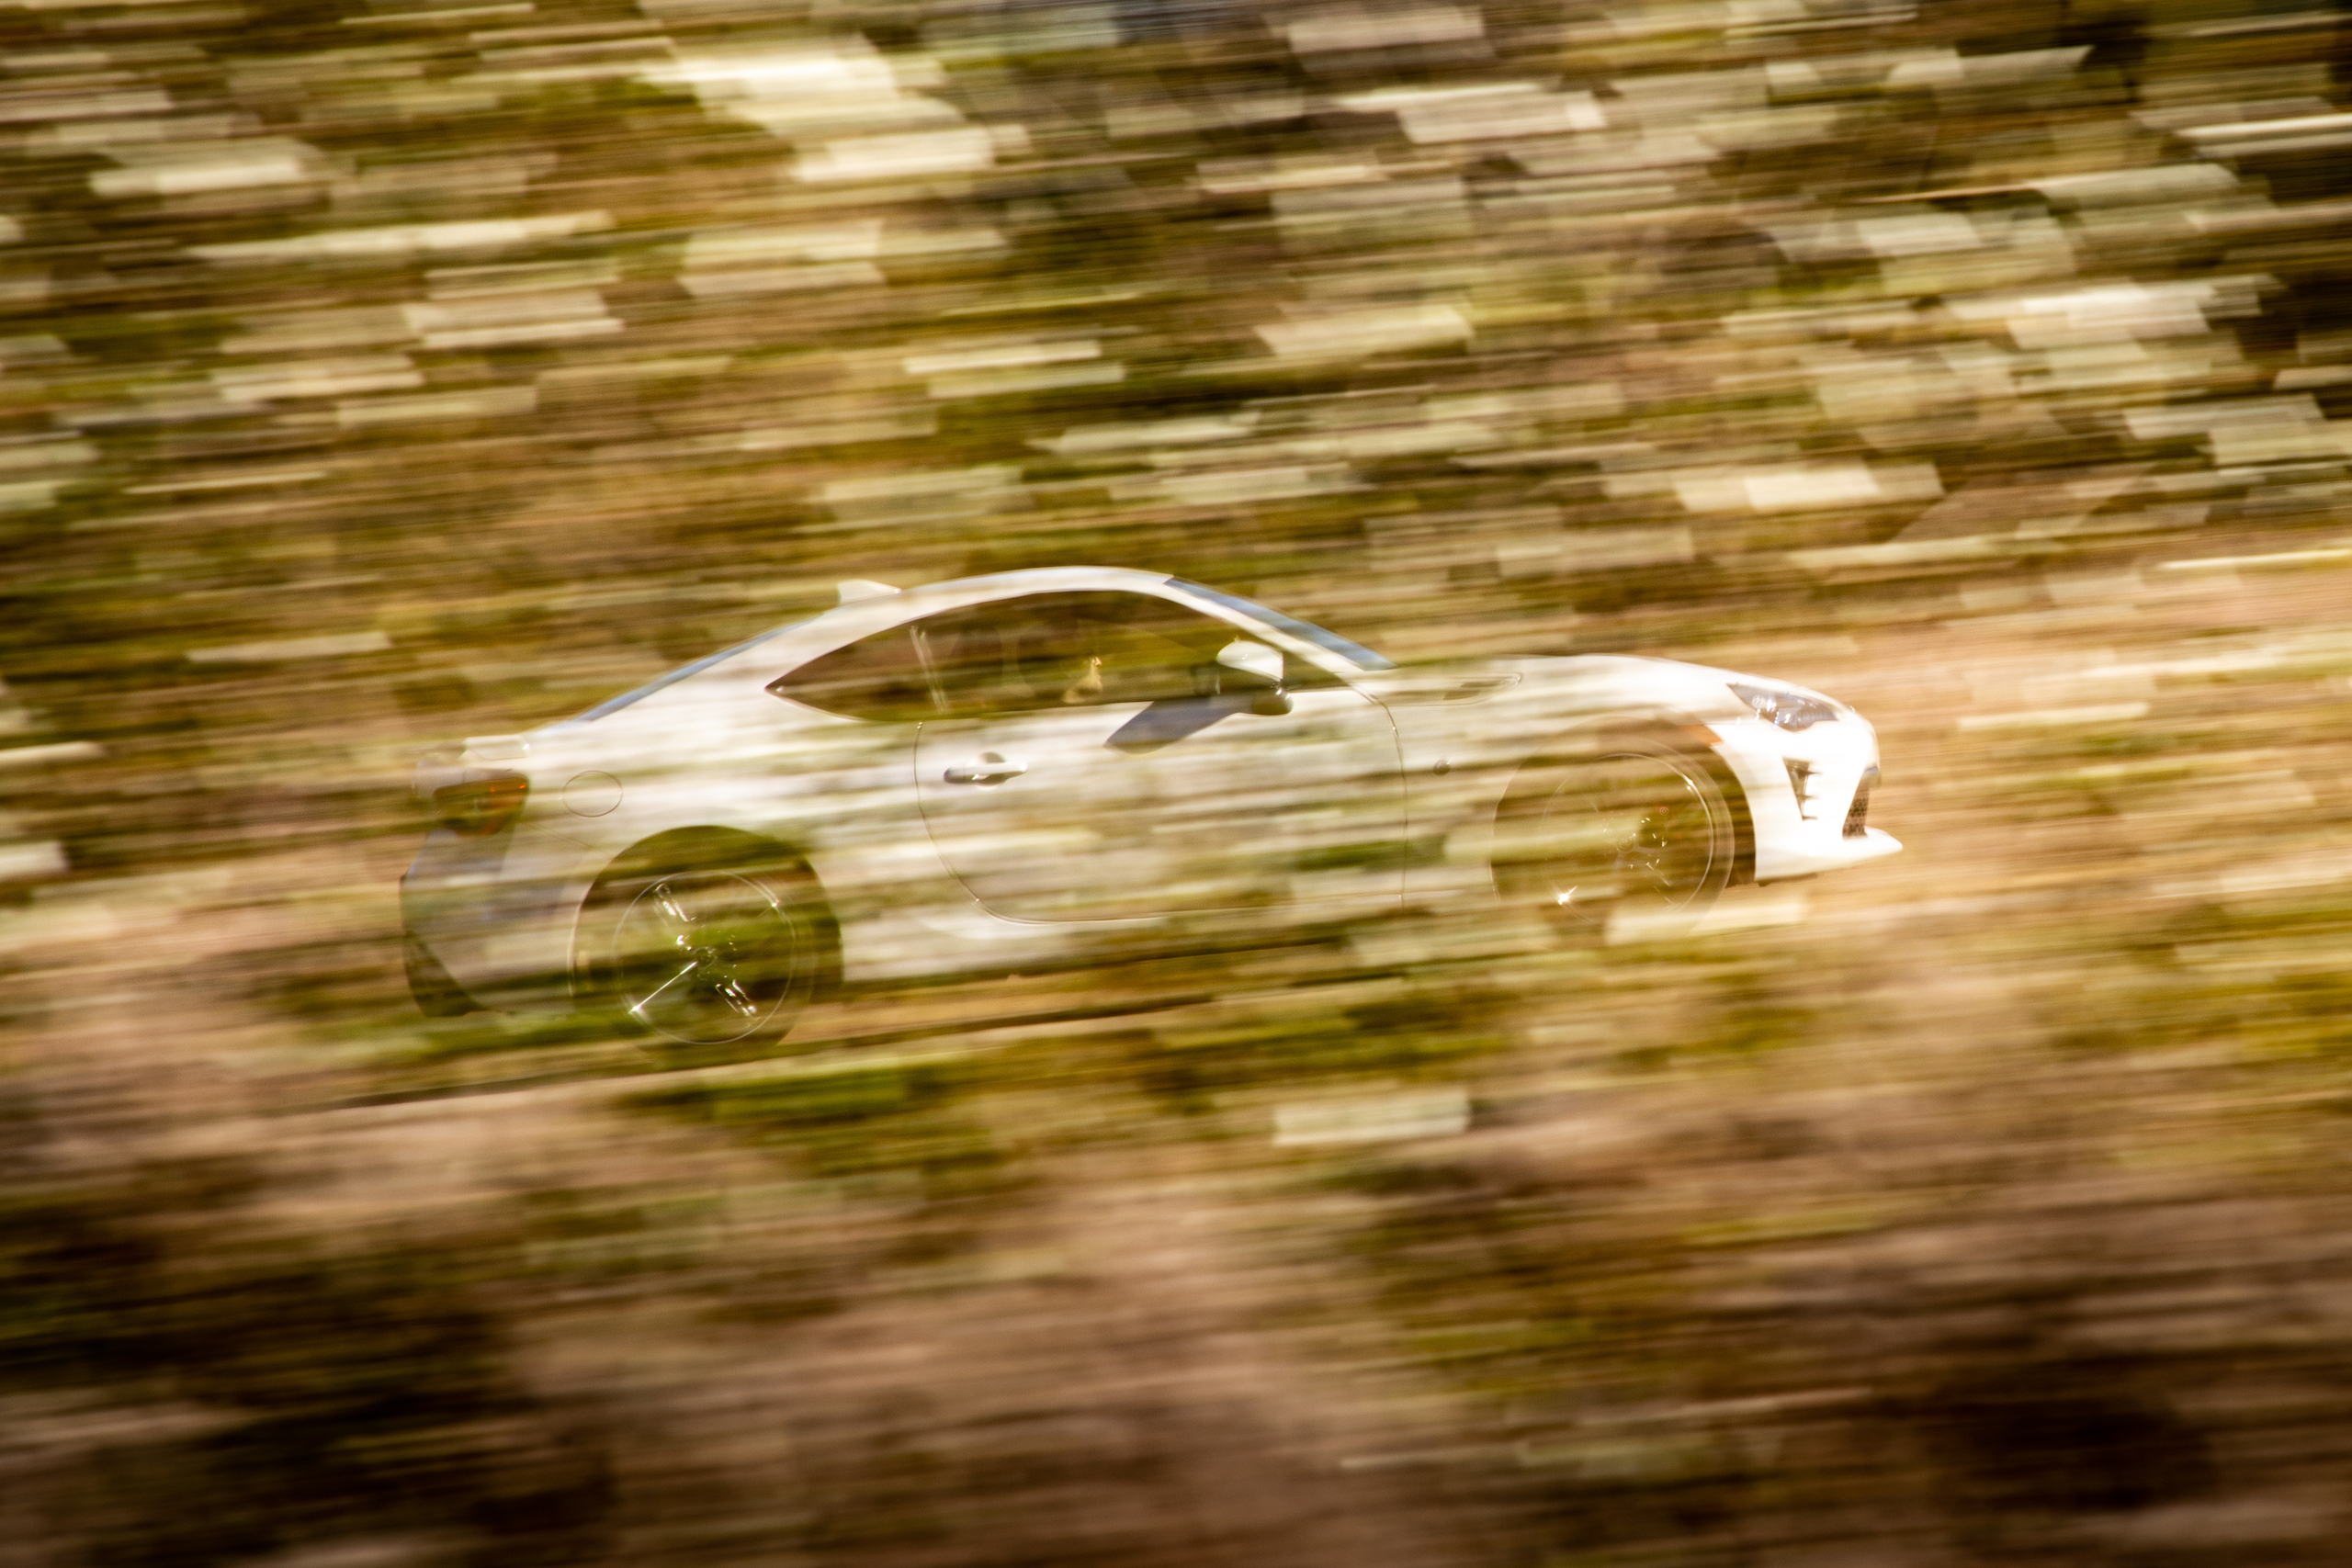 2020 Toyota 86 GT side profile dynamic action through foliage